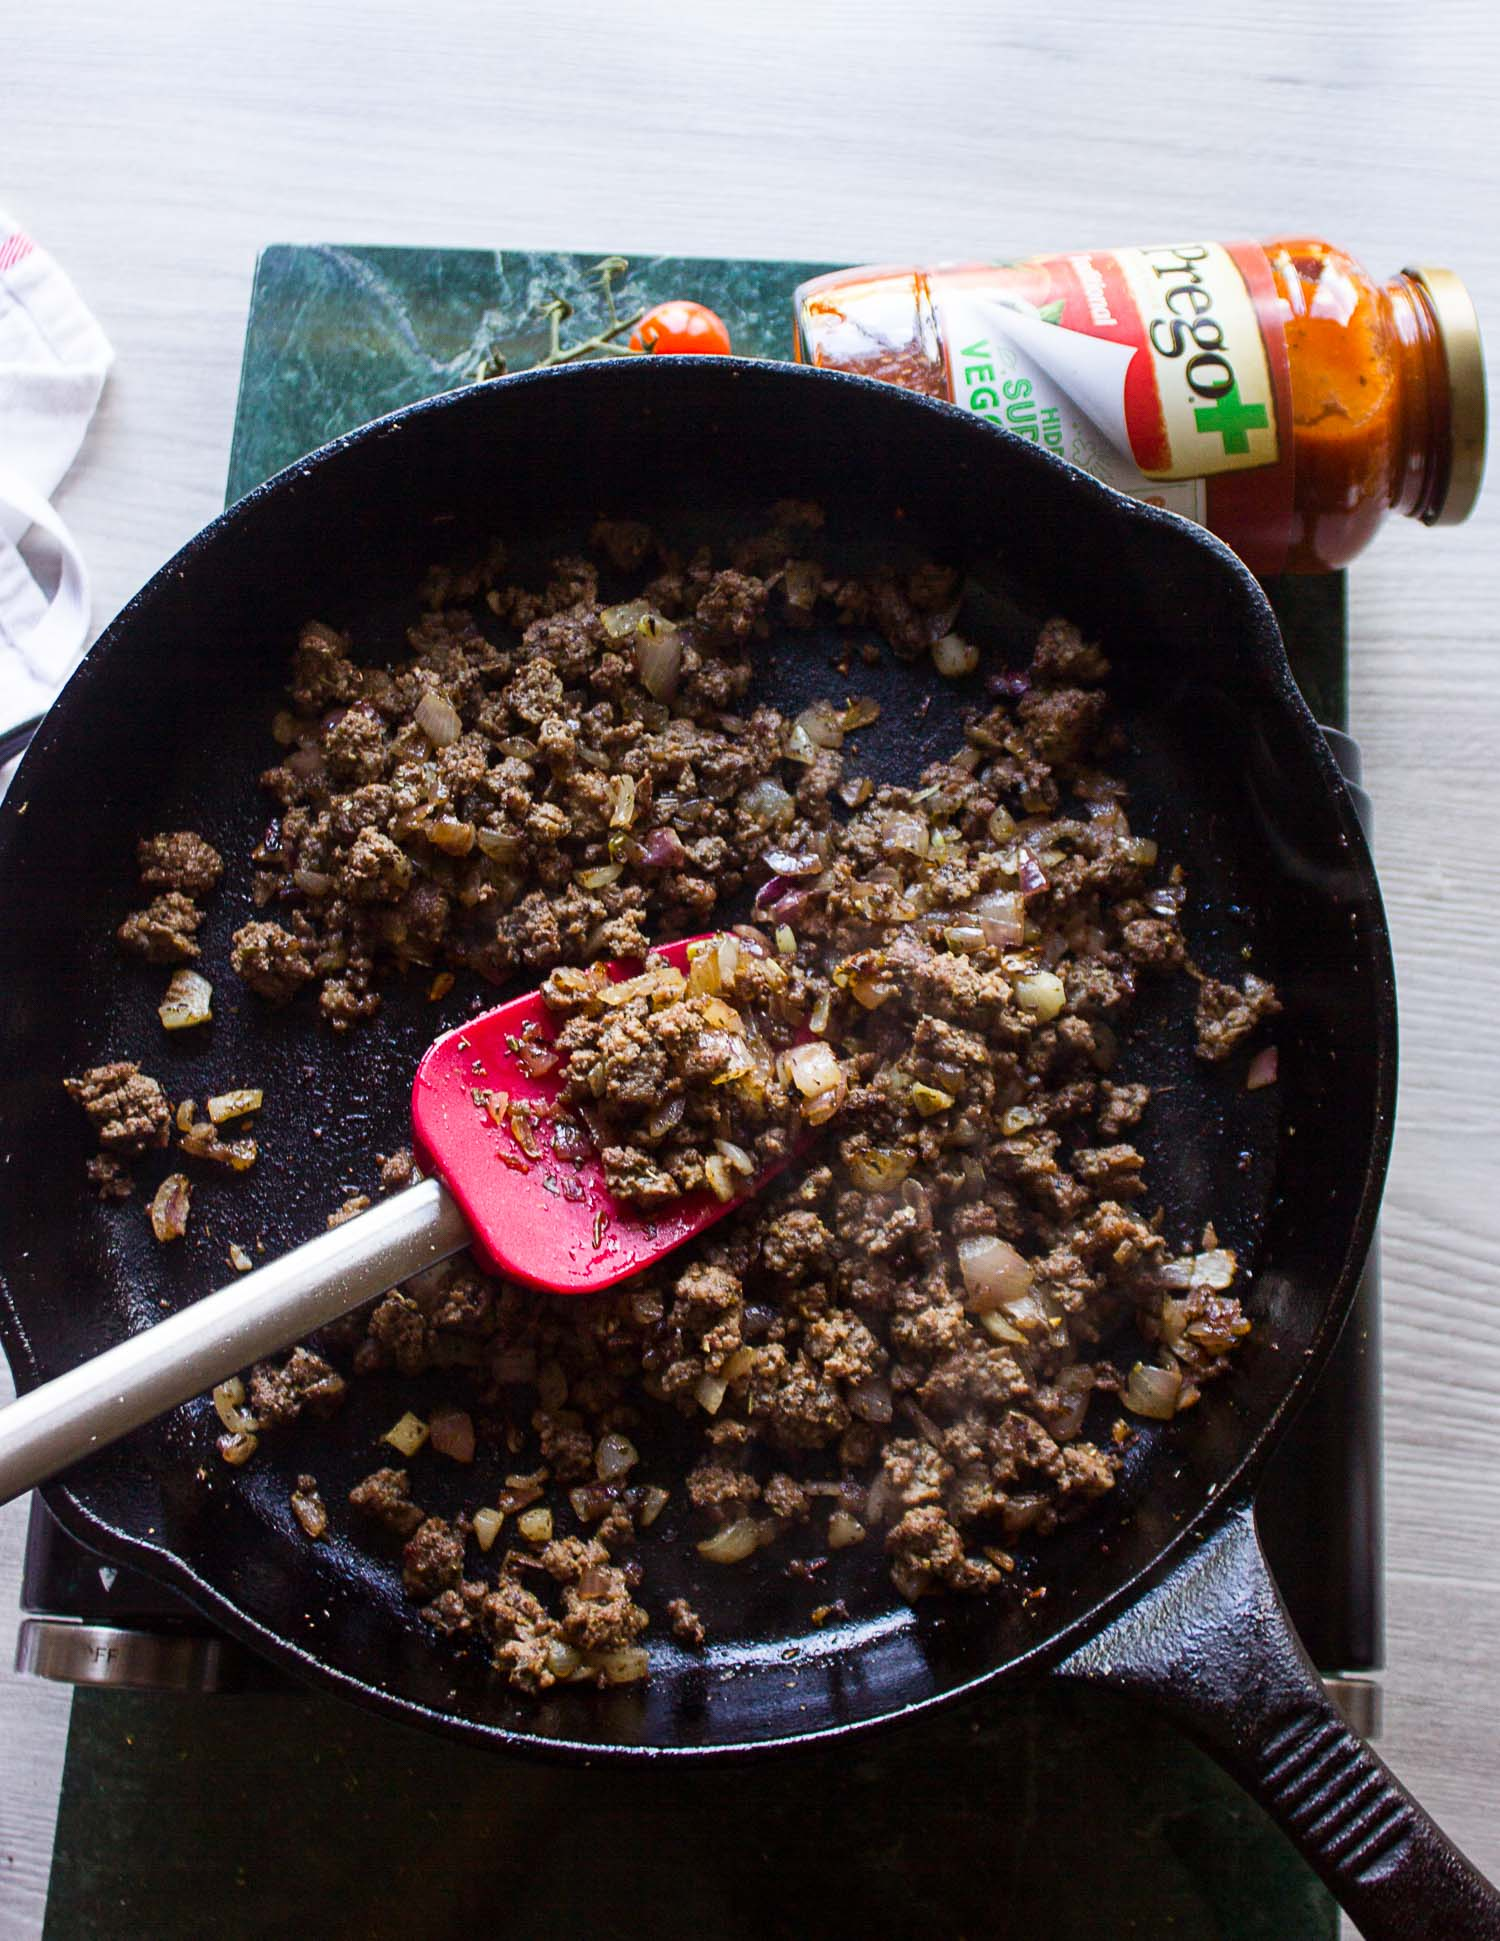 A mixture of ground beef cooked in a pan